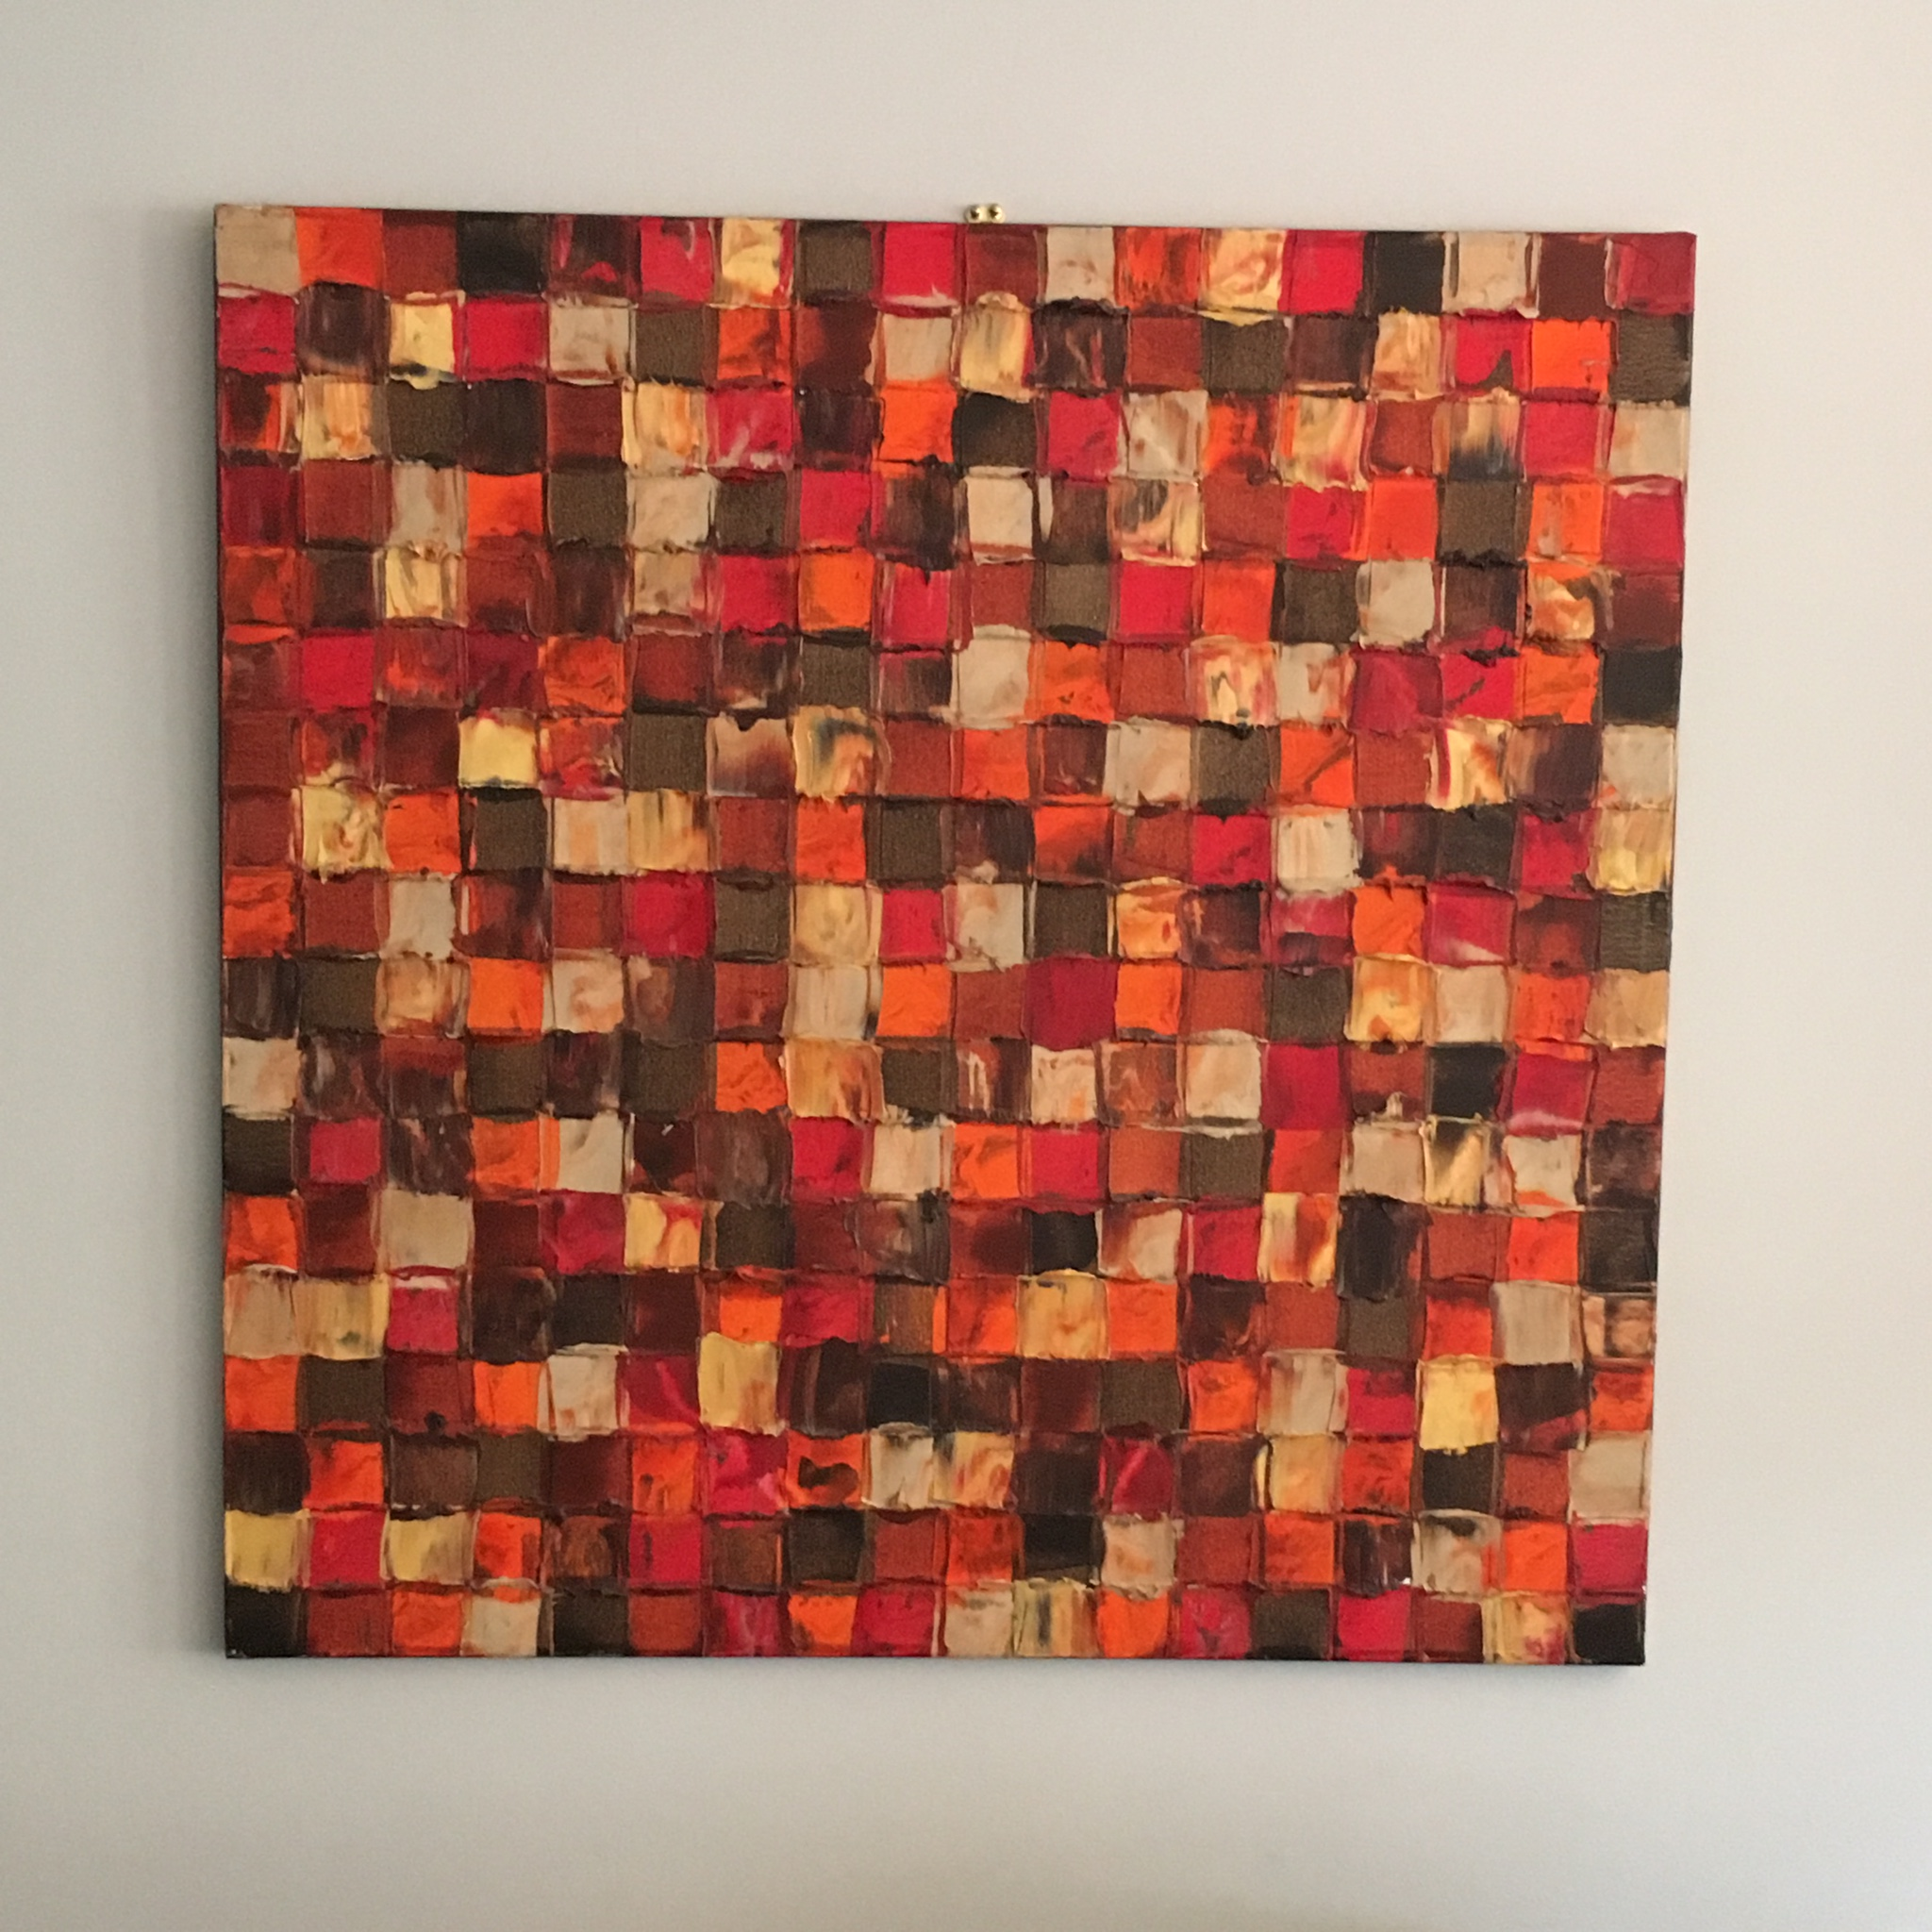 Roasted artwork by Kimberly Dawn - art listed for sale on Artplode